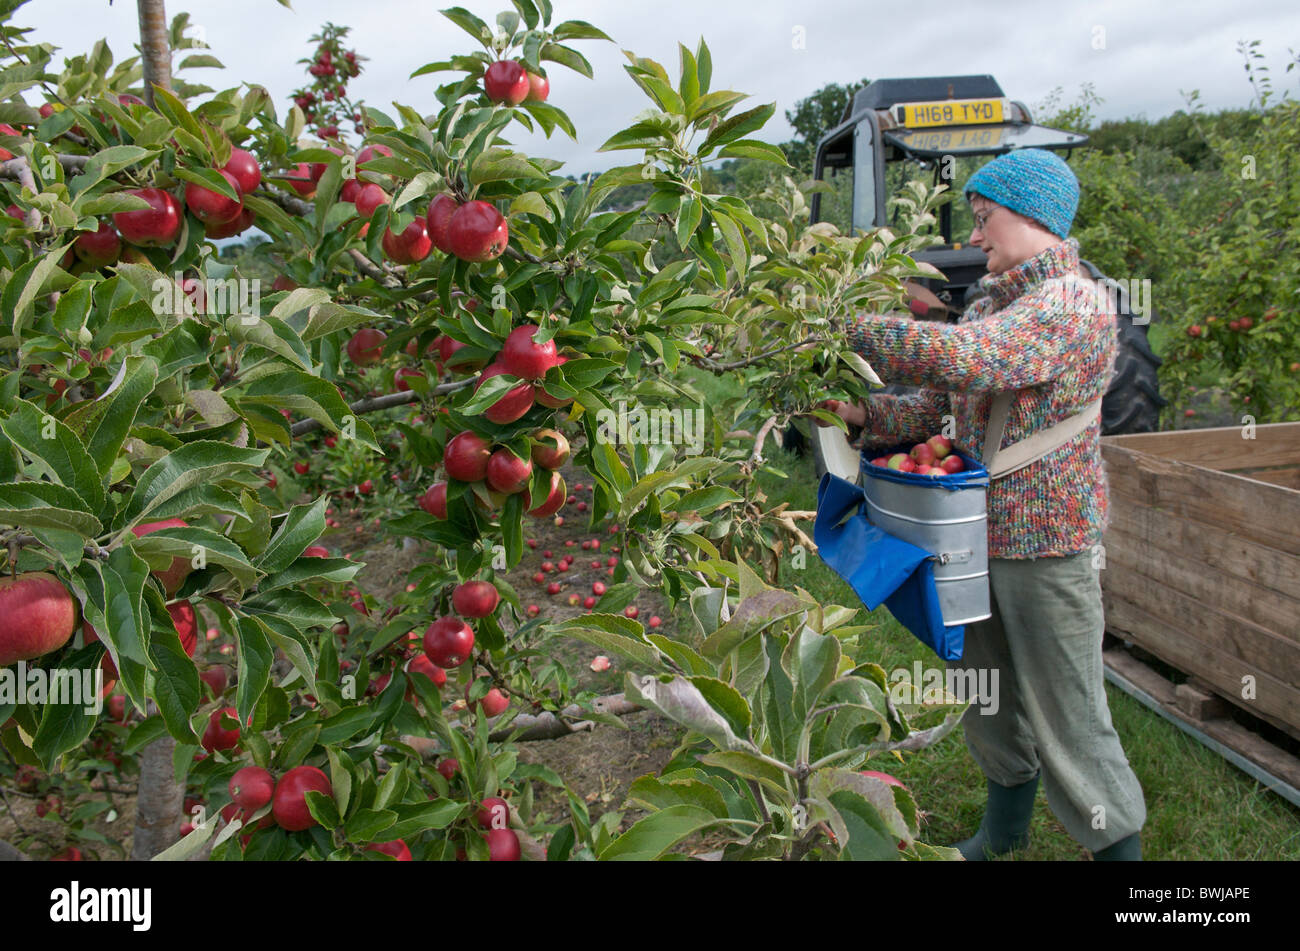 when is the best time to pick apples from tree in uk